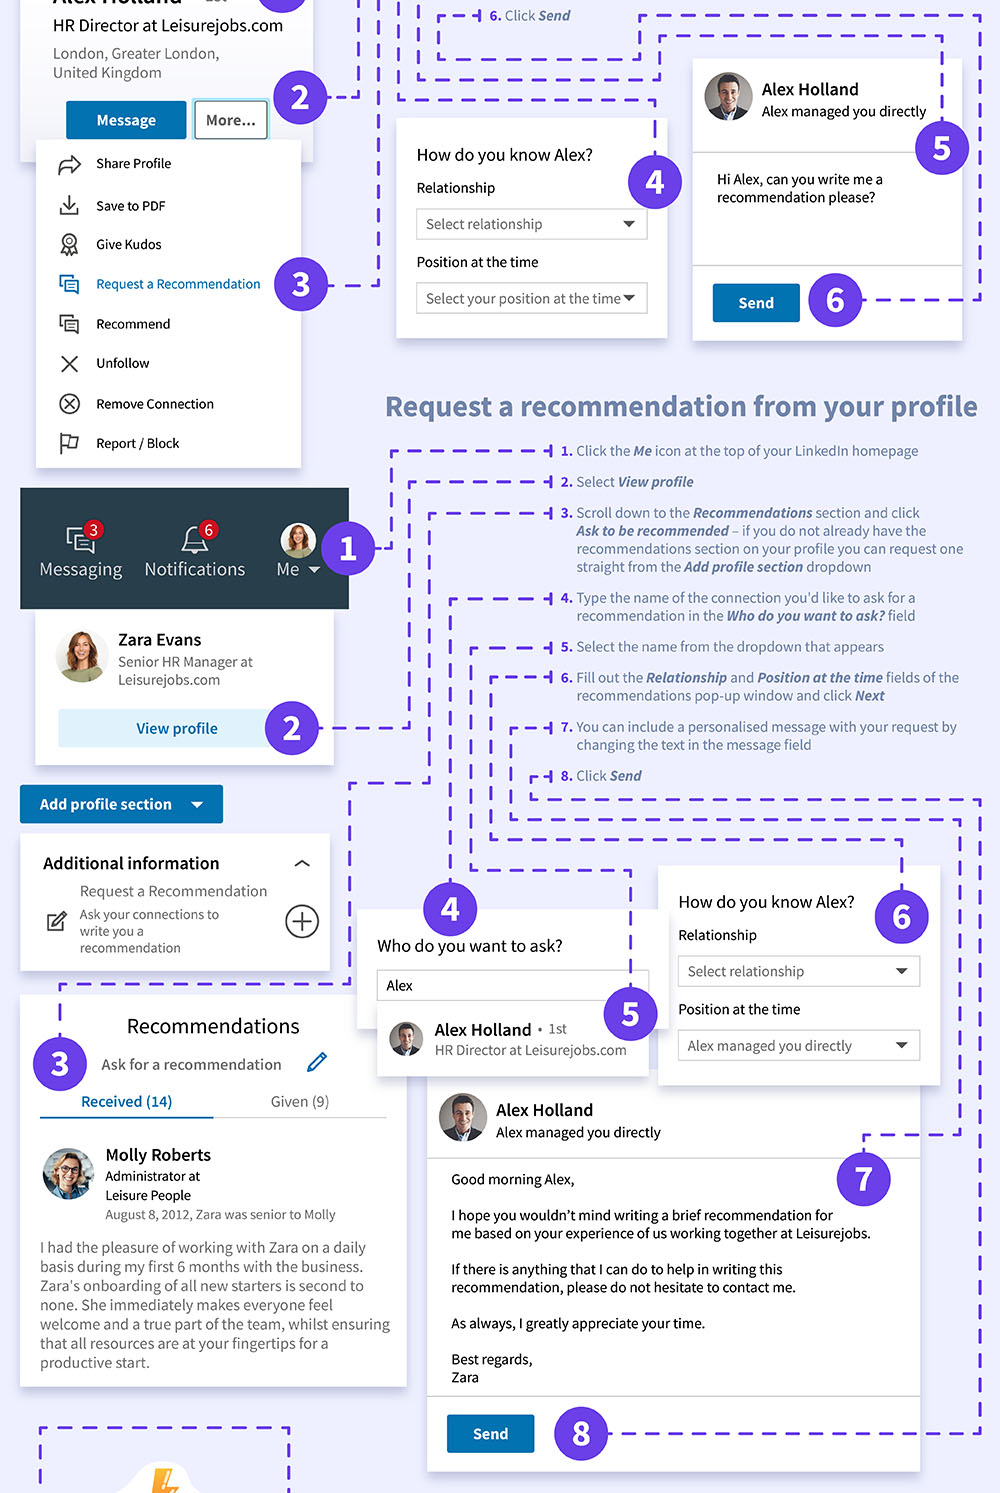 The Ultimate LinkedIn Cheat Sheet - 2019 version